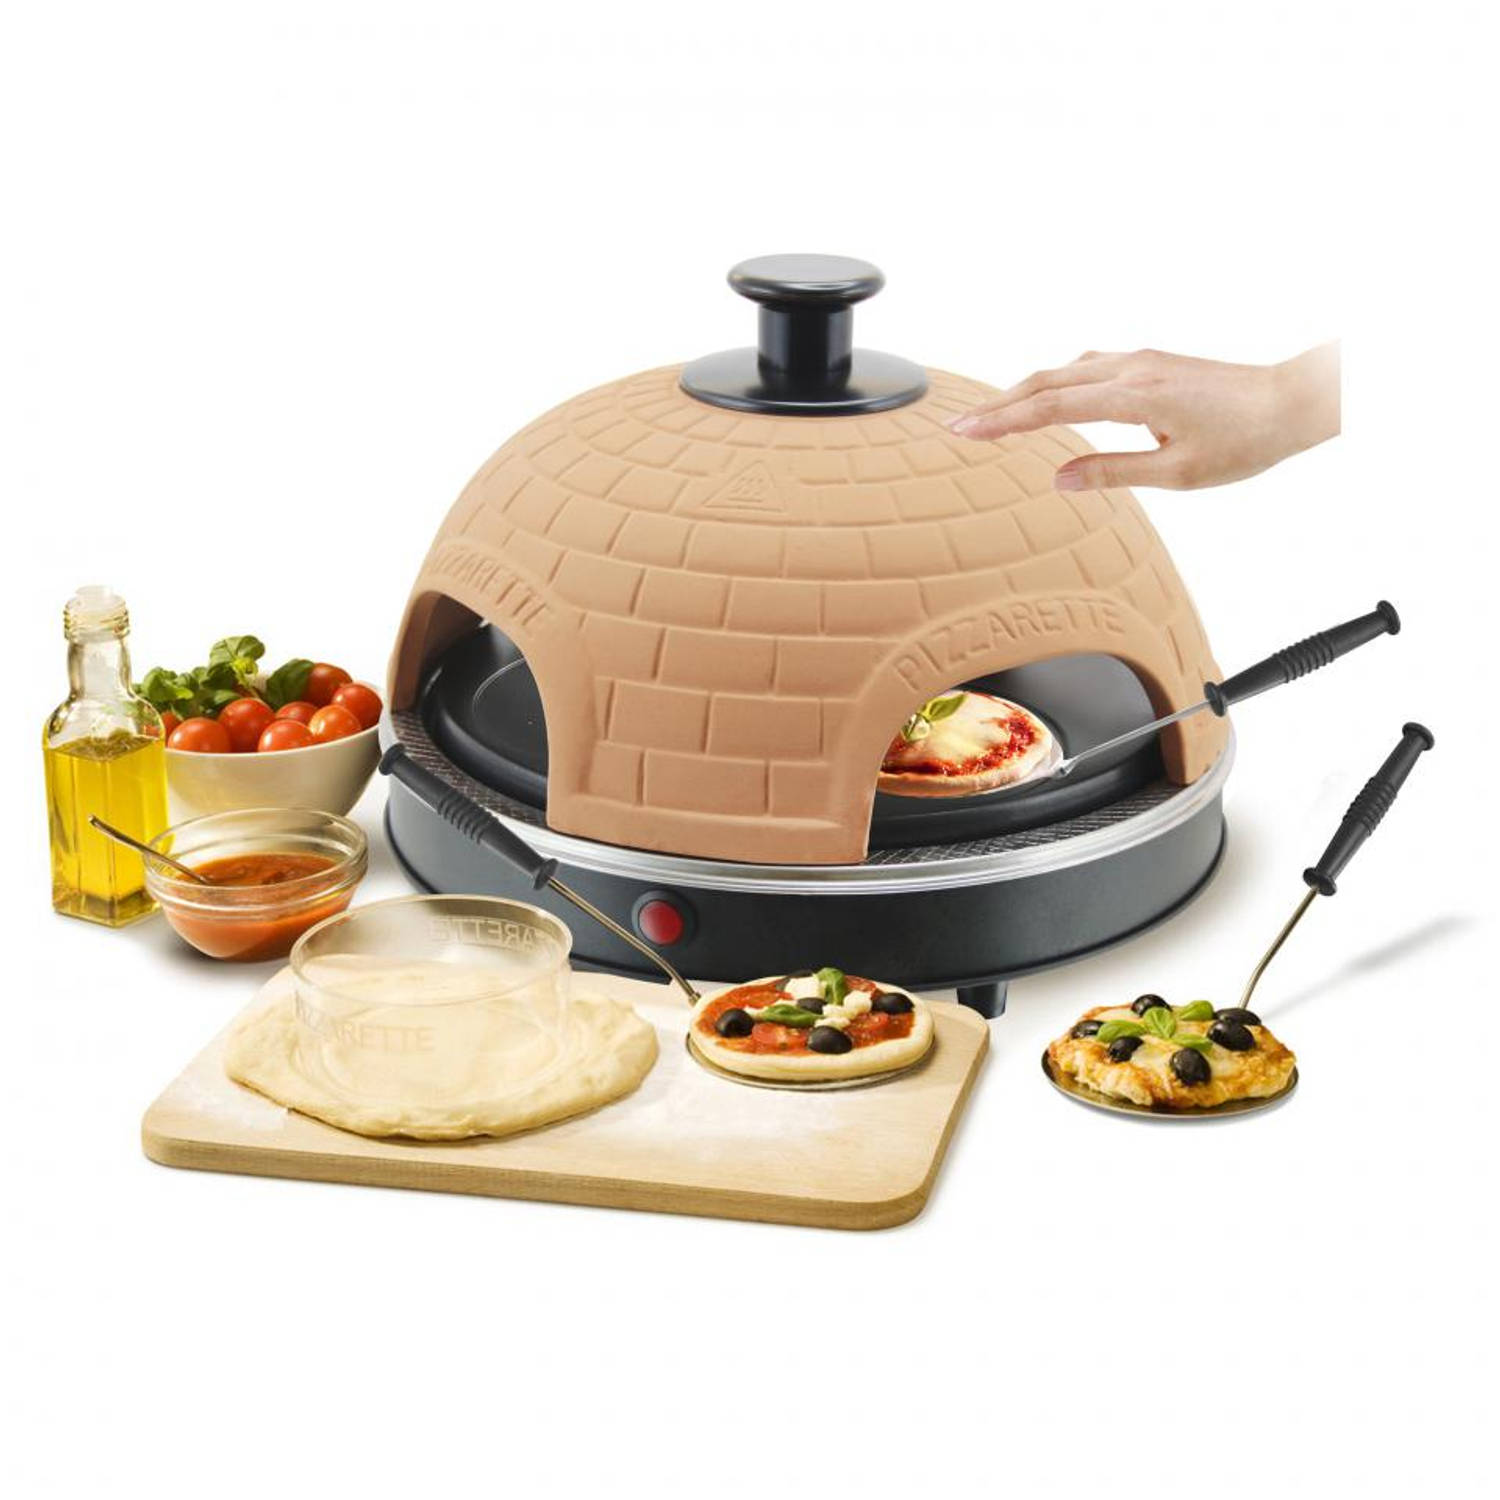 Emerio Pizzarette Cool Wall PO-112135 4 persoons